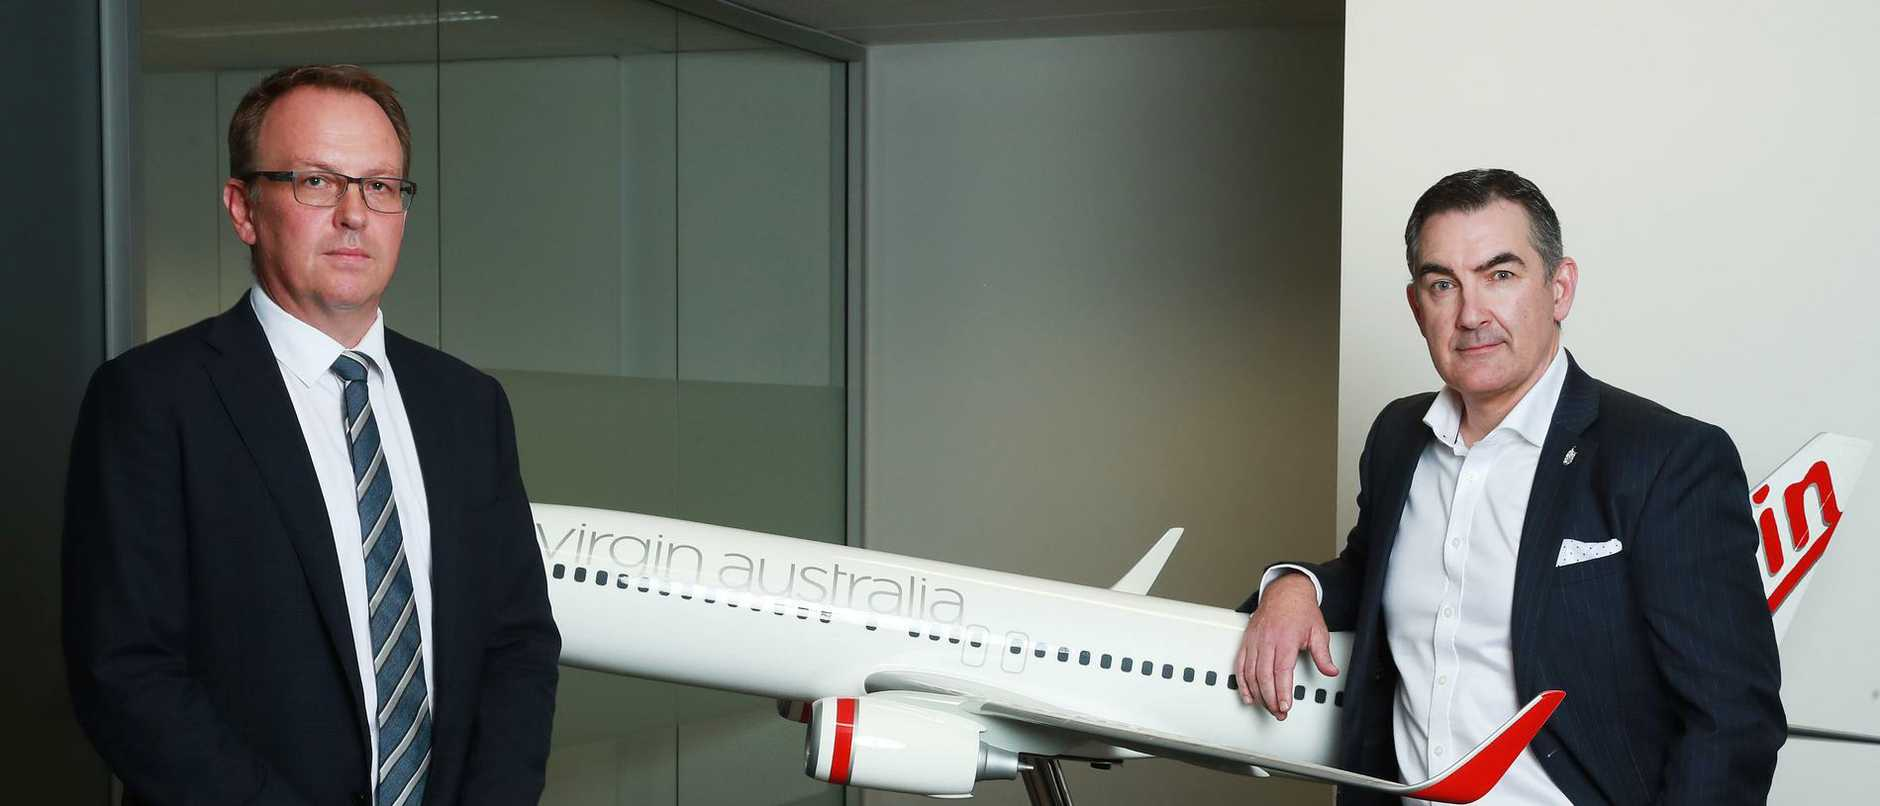 This year's largest administration – the collapse of Virgin Australia – is almost over and now the cost of administrators can be revealed.